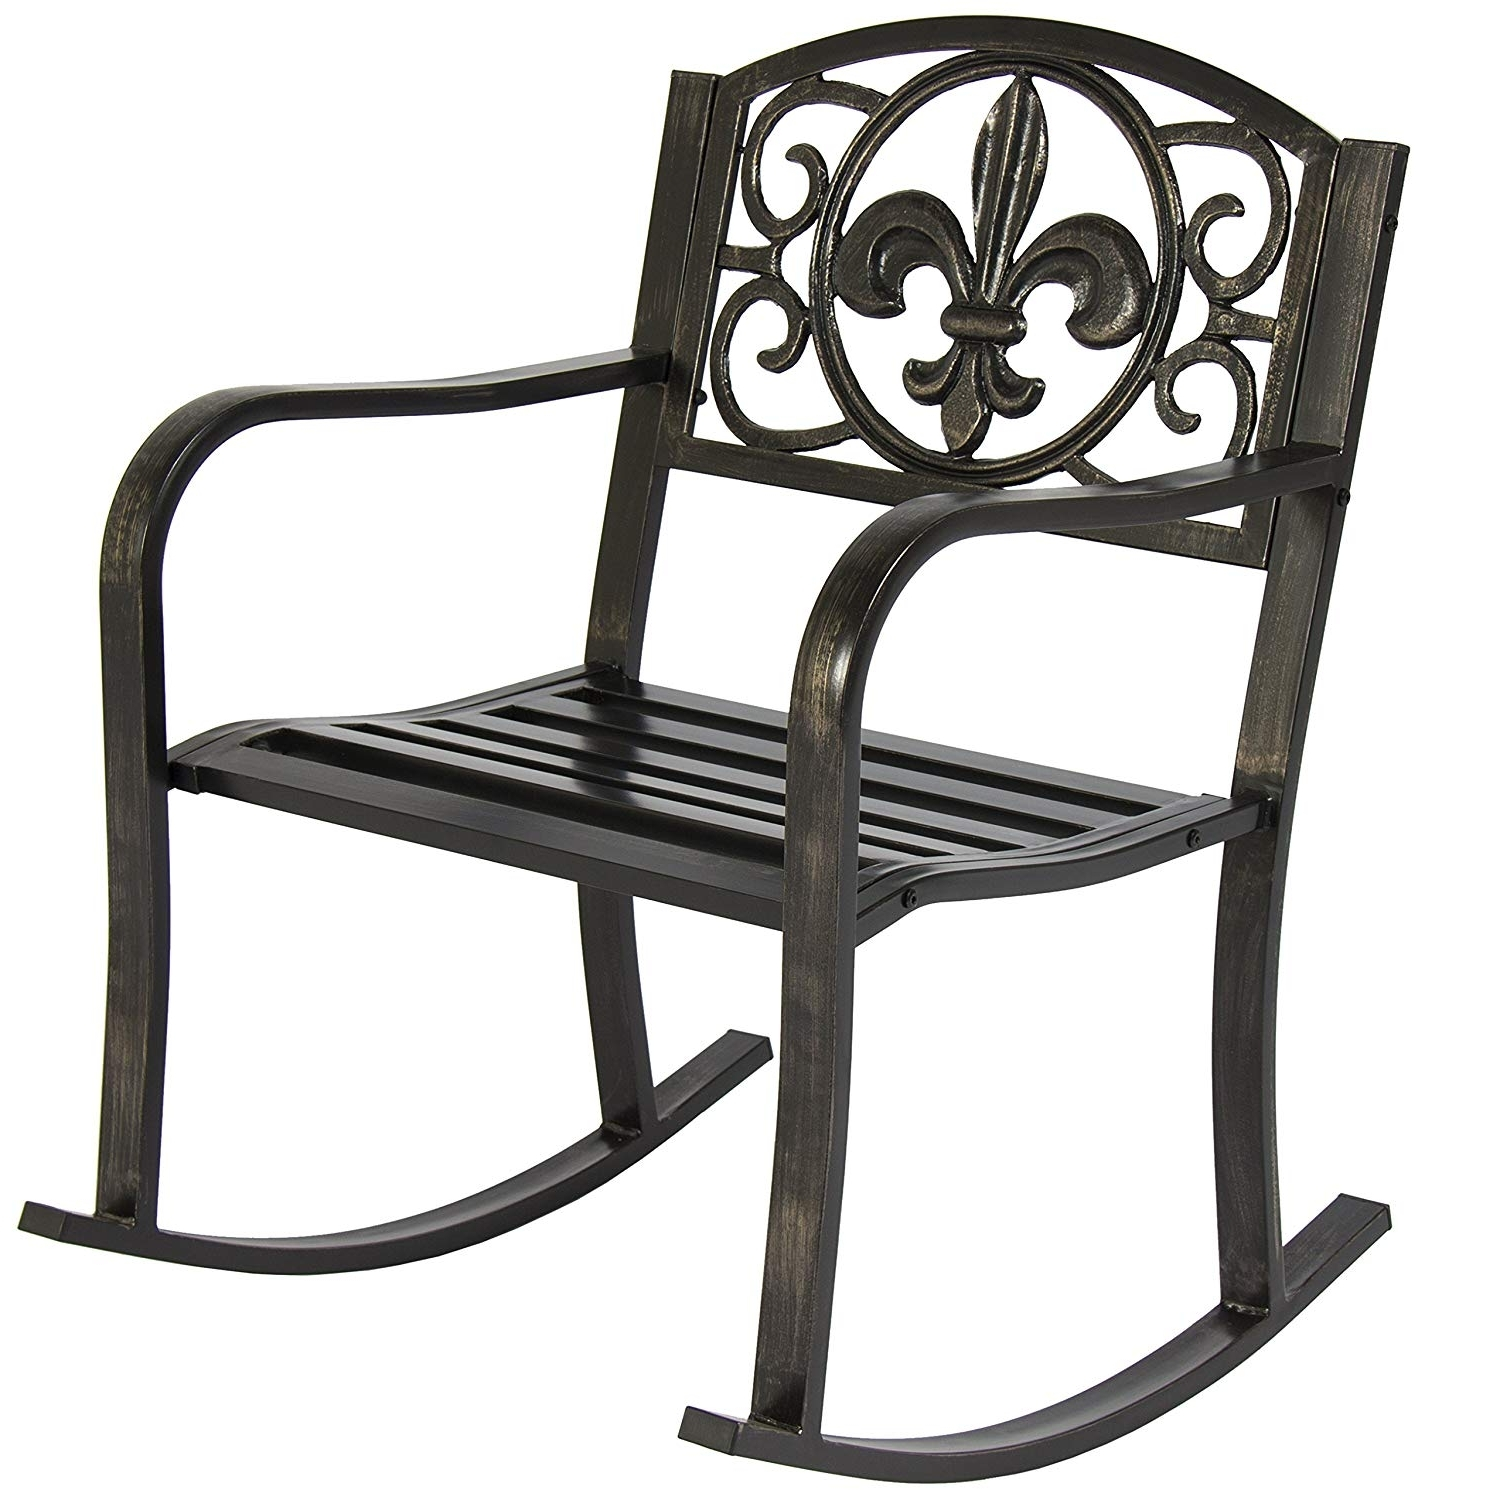 Latest Patio Rocking Chairs And Gliders In Amazon : Best Choice Products Metal Rocking Chair Seat For Patio (View 4 of 15)